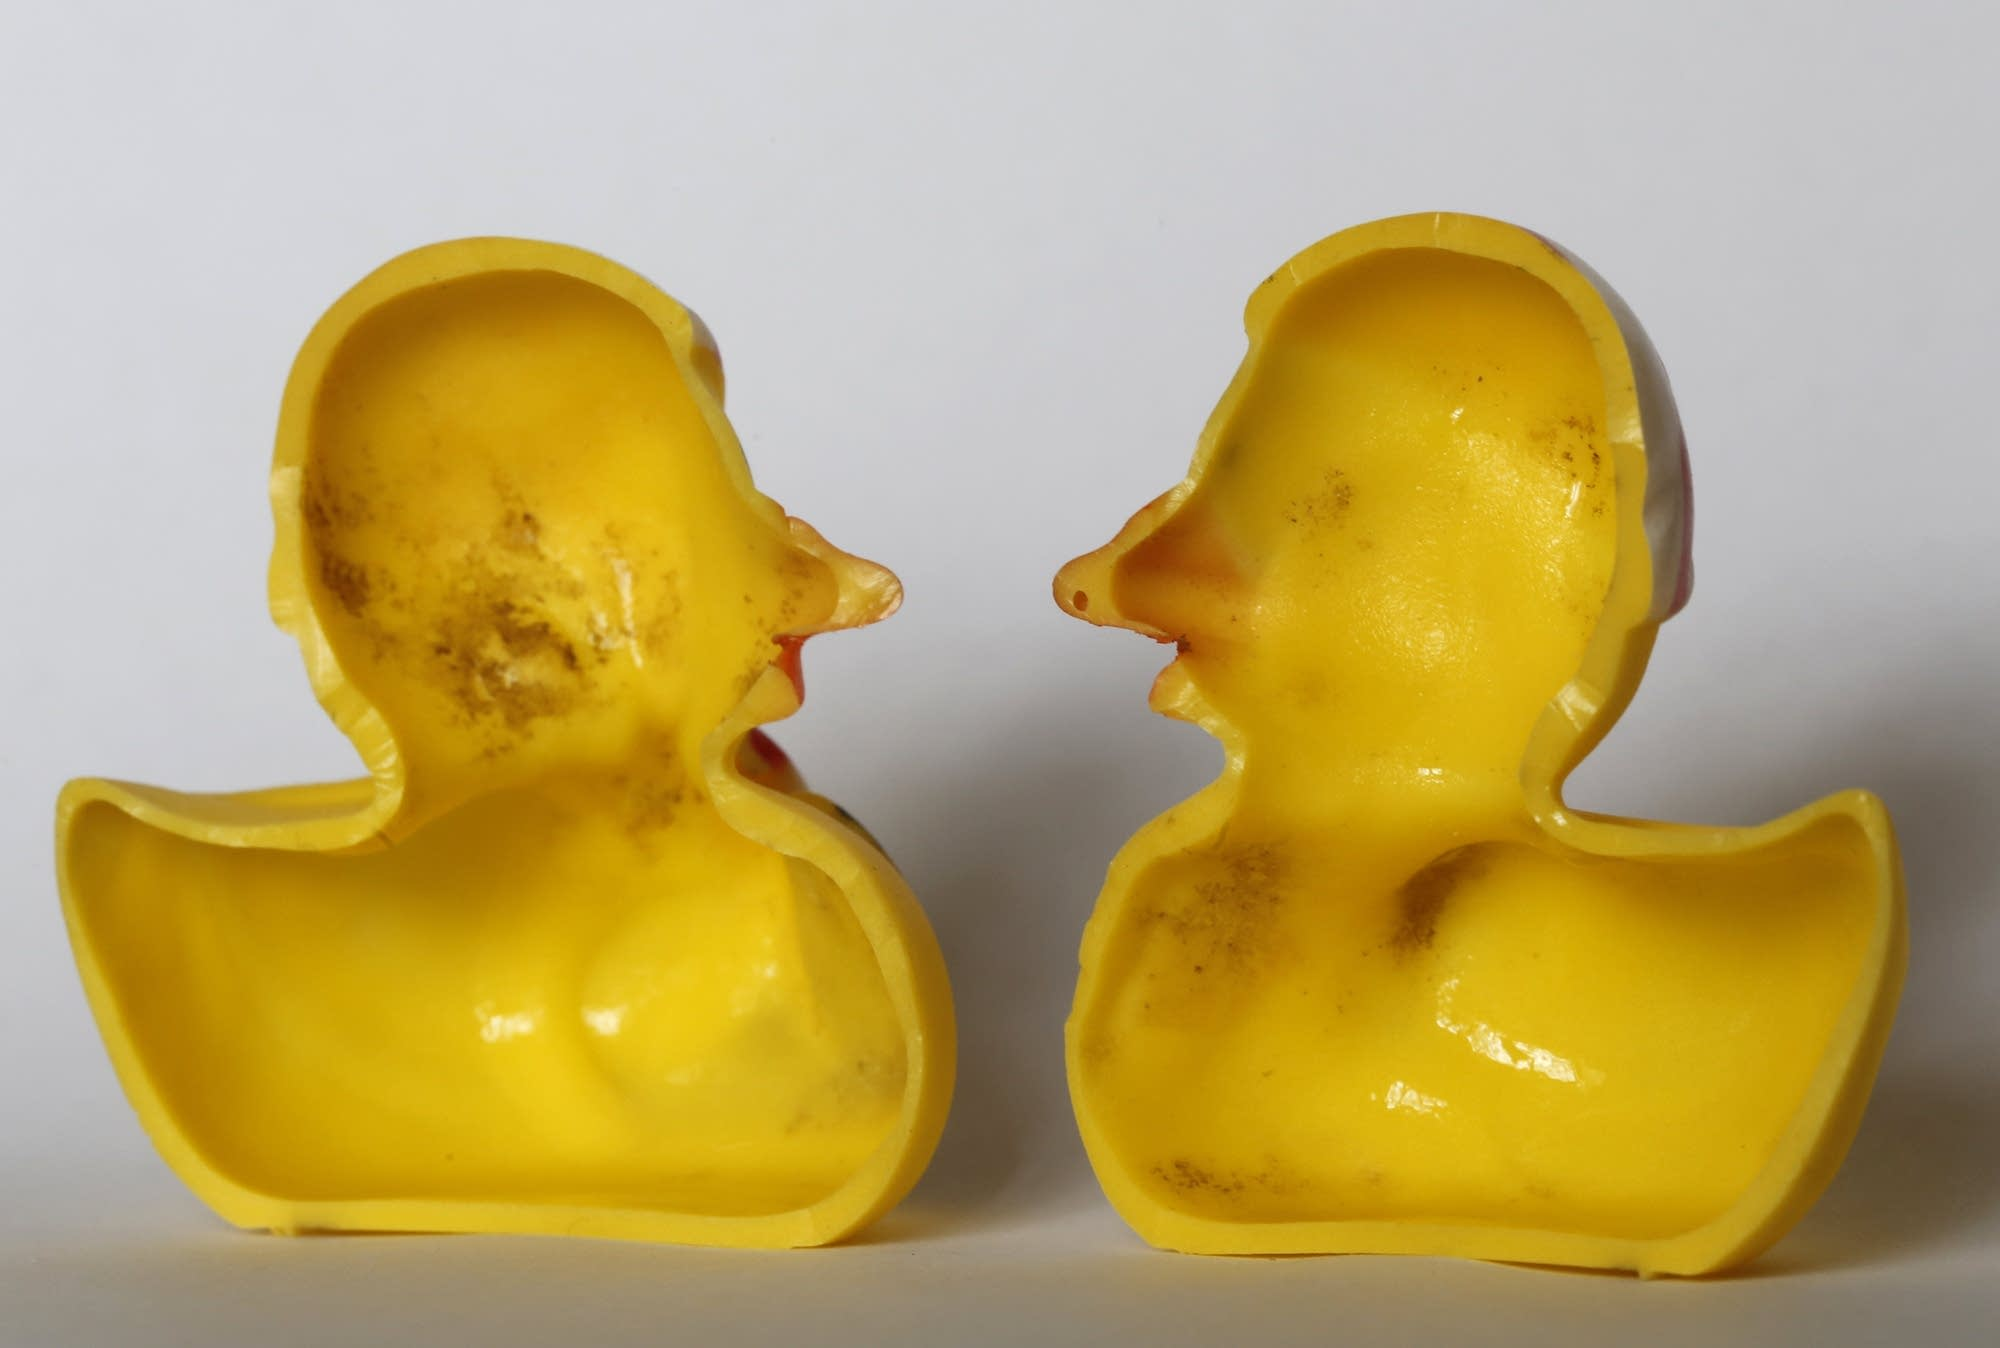 Rubber ducks hold tons of bacteria